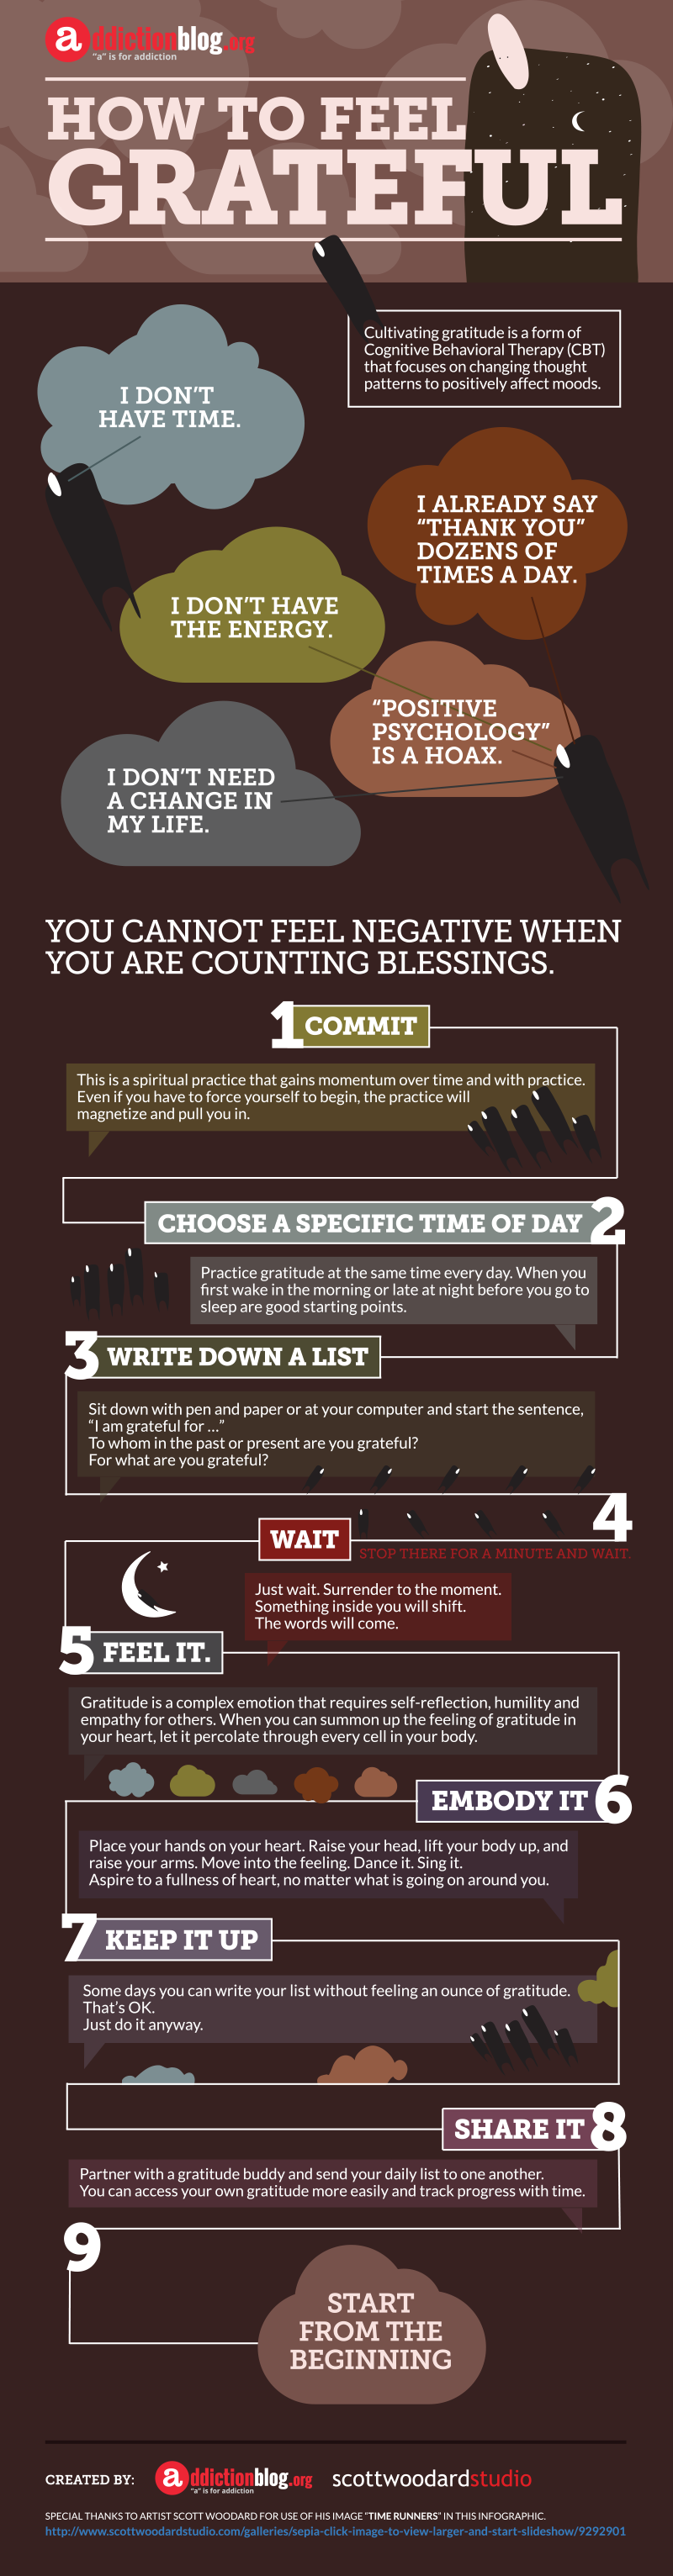 How to feel more grateful (INFOGRAPHIC)